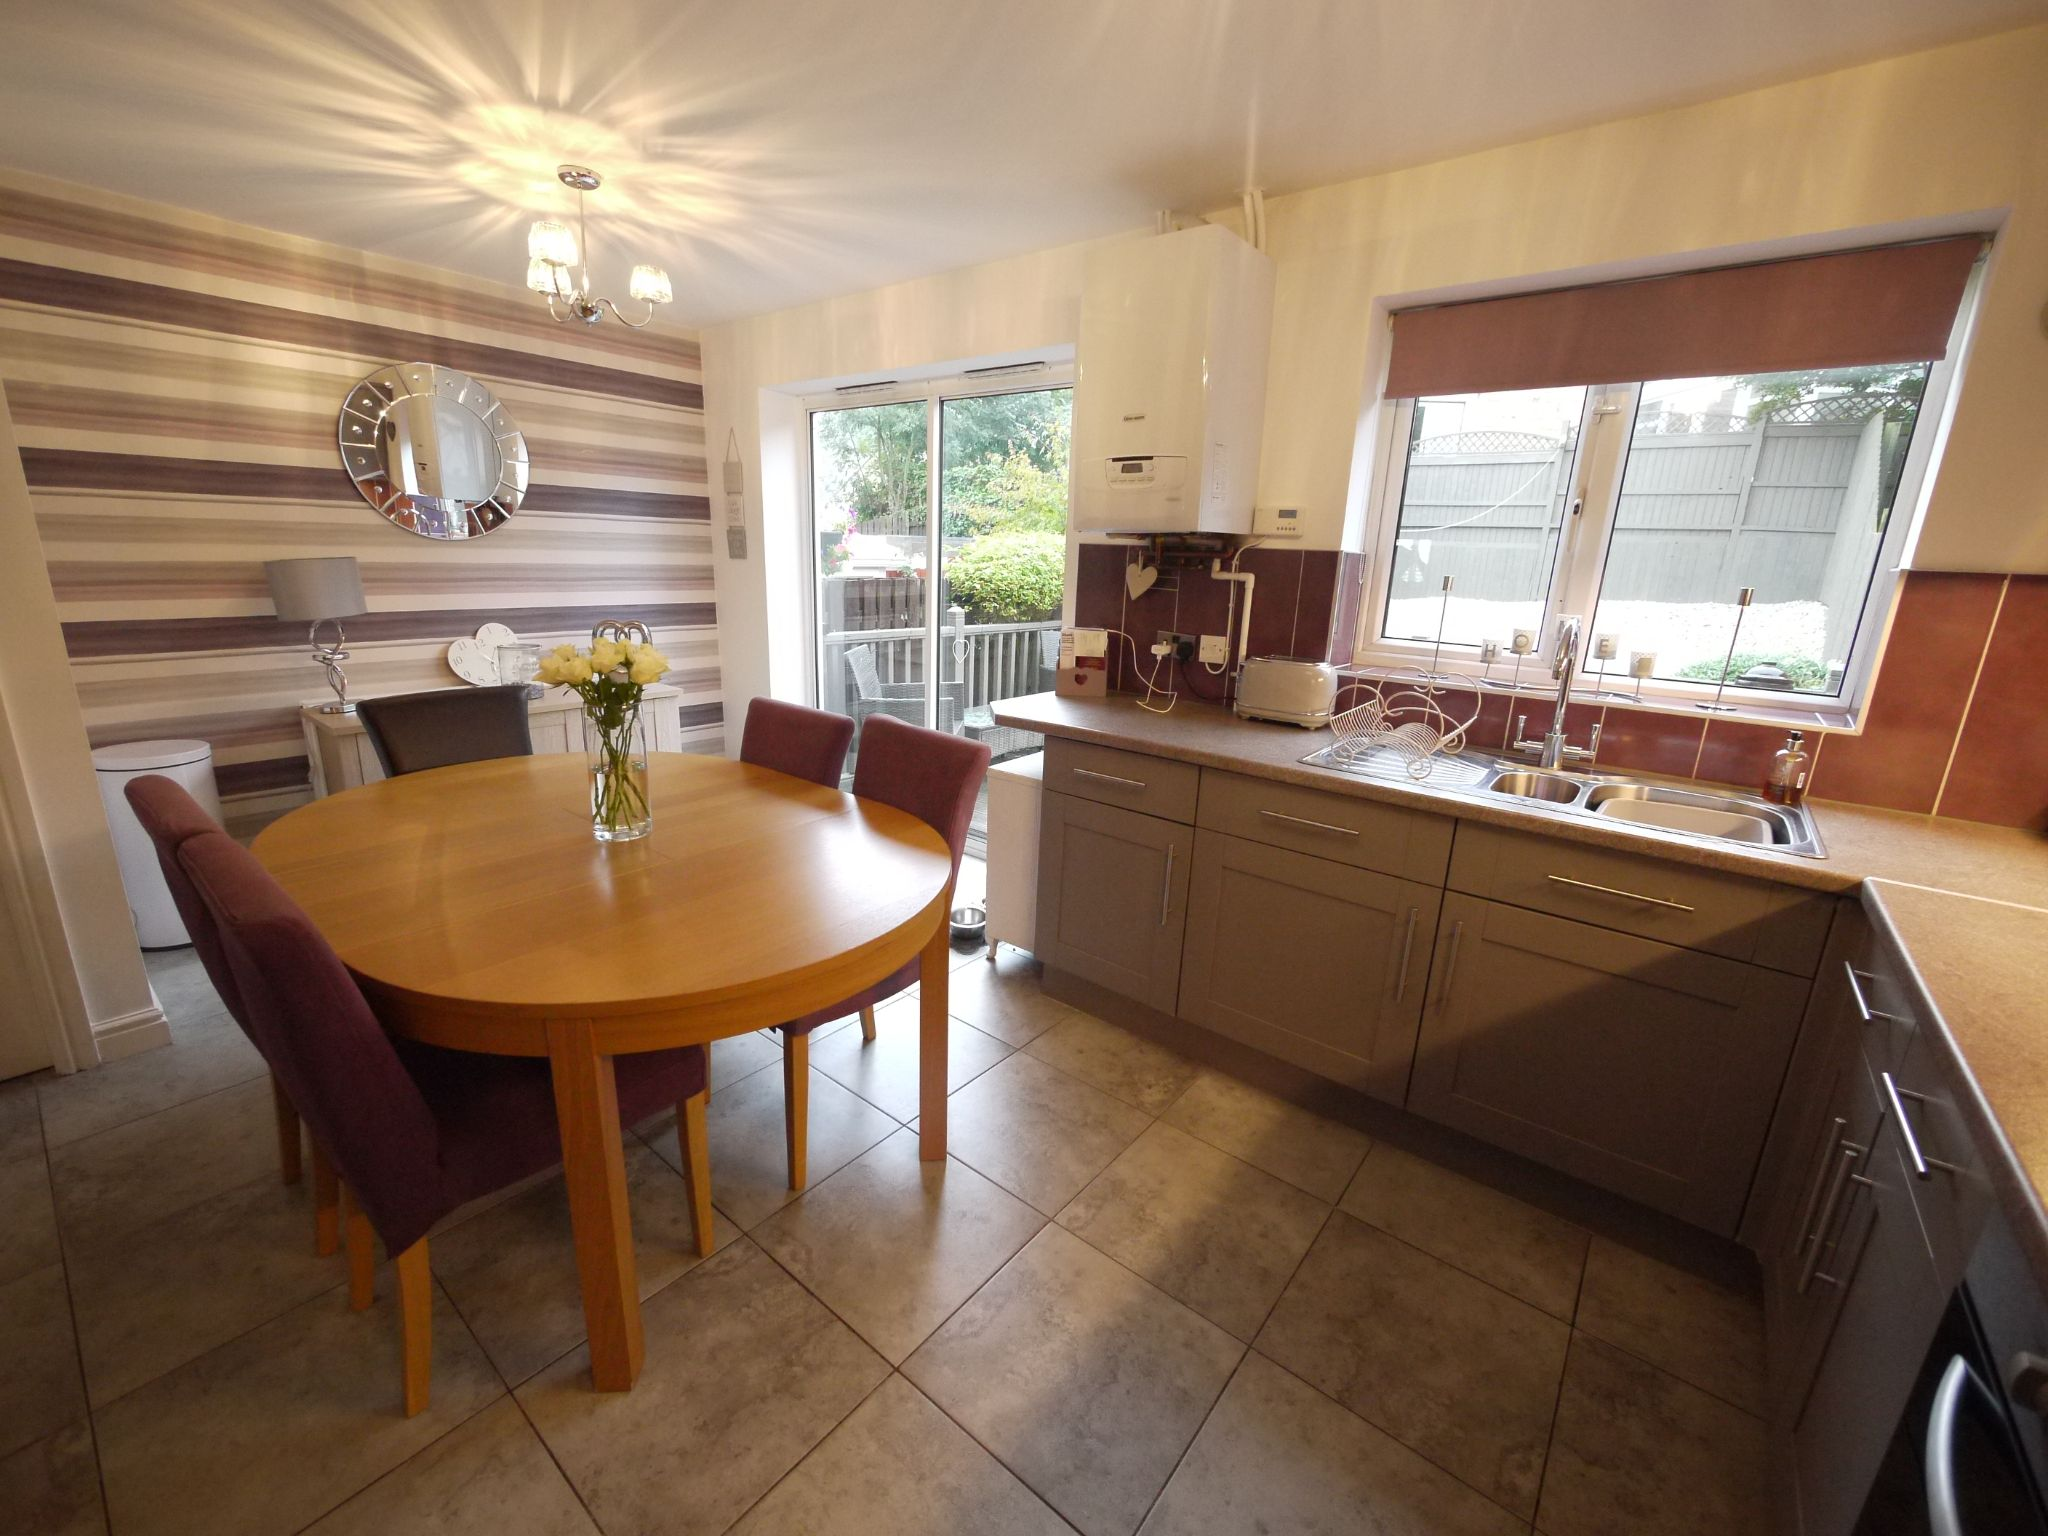 4 bedroom town house For Sale in Brighouse - Dining Kitchen 2.